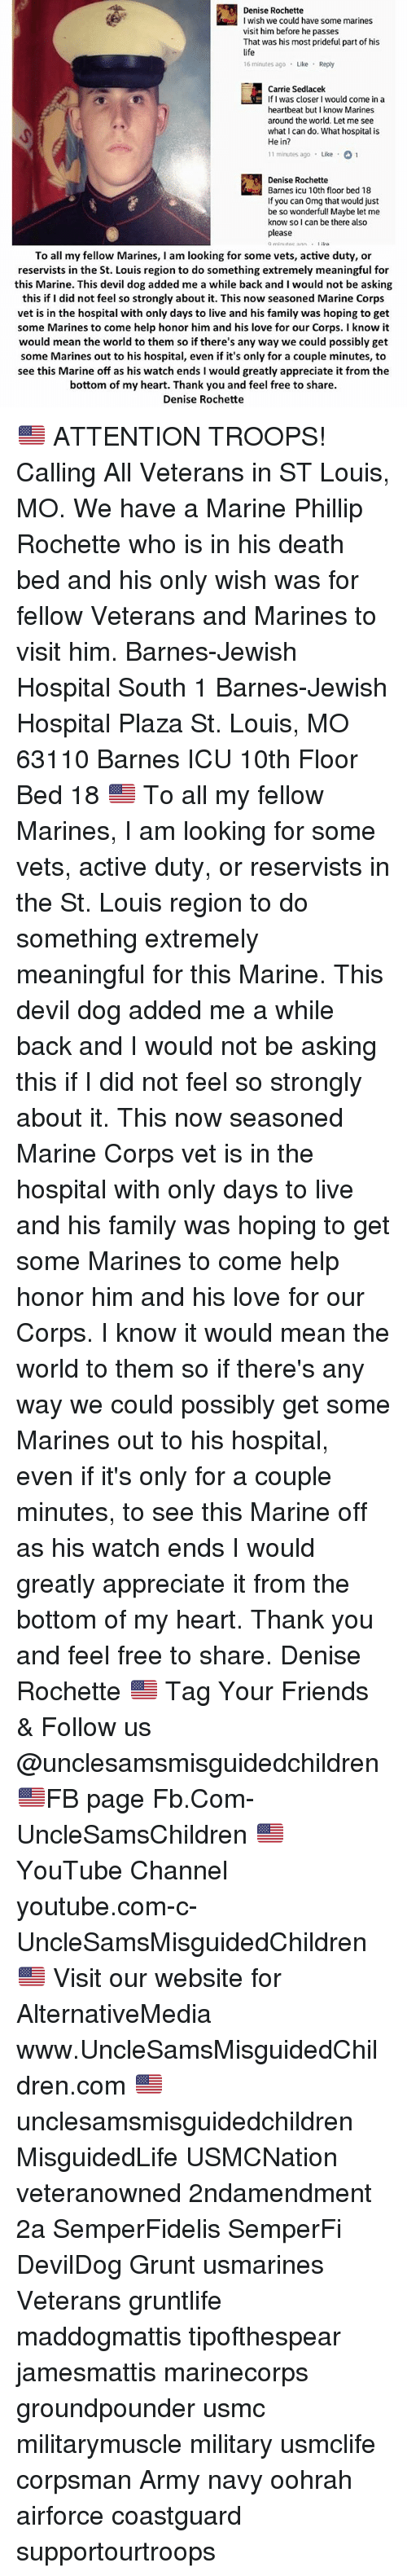 Corpsing: Denise Rochette  I wish we could have some marines  visit him before he passes  That was his most prideful part of his  life  16 minutes ago Like Reply  Carrie Sedlacek  If I was closer I would come in a  heartbeat but I know Marines  around the world. Let me see  what I can do. What hospital is  He in?  11 minutes ago Like 1  Denise Rochette  Barnes icu 10th floor bed 18  If you can Omg that would just  be so wonderful! Maybe let me  know so l can be there also  please  To all my fellow Marines, I am looking for some vets, active duty, or  reservists in the St. Louis region to do something extremely meaningful for  this Marine. This devil dog added me a while back and I would not be asking  this if I did not feel so strongly about it. This now seasoned Marine Corps  vet is in the hospital with only days to live and his family was hoping to get  some Marines to come help honor him and his love for our Corps. I know it  would mean the world to them so if there's any way we could possibly get  some Marines out to his hospital, even if it's only for a couple minutes, to  see this Marine off as his watch ends I would greatly appreciate it from the  bottom of my heart. Thank you and feel free to share.  Denise Rochette 🇺🇸 ATTENTION TROOPS! Calling All Veterans in ST Louis, MO. We have a Marine Phillip Rochette who is in his death bed and his only wish was for fellow Veterans and Marines to visit him. Barnes-Jewish Hospital South 1 Barnes-Jewish Hospital Plaza St. Louis, MO 63110 Barnes ICU 10th Floor Bed 18 🇺🇸 To all my fellow Marines, I am looking for some vets, active duty, or reservists in the St. Louis region to do something extremely meaningful for this Marine. This devil dog added me a while back and I would not be asking this if I did not feel so strongly about it. This now seasoned Marine Corps vet is in the hospital with only days to live and his family was hoping to get some Marines to come help honor him and his love for our Corps. I know it would me